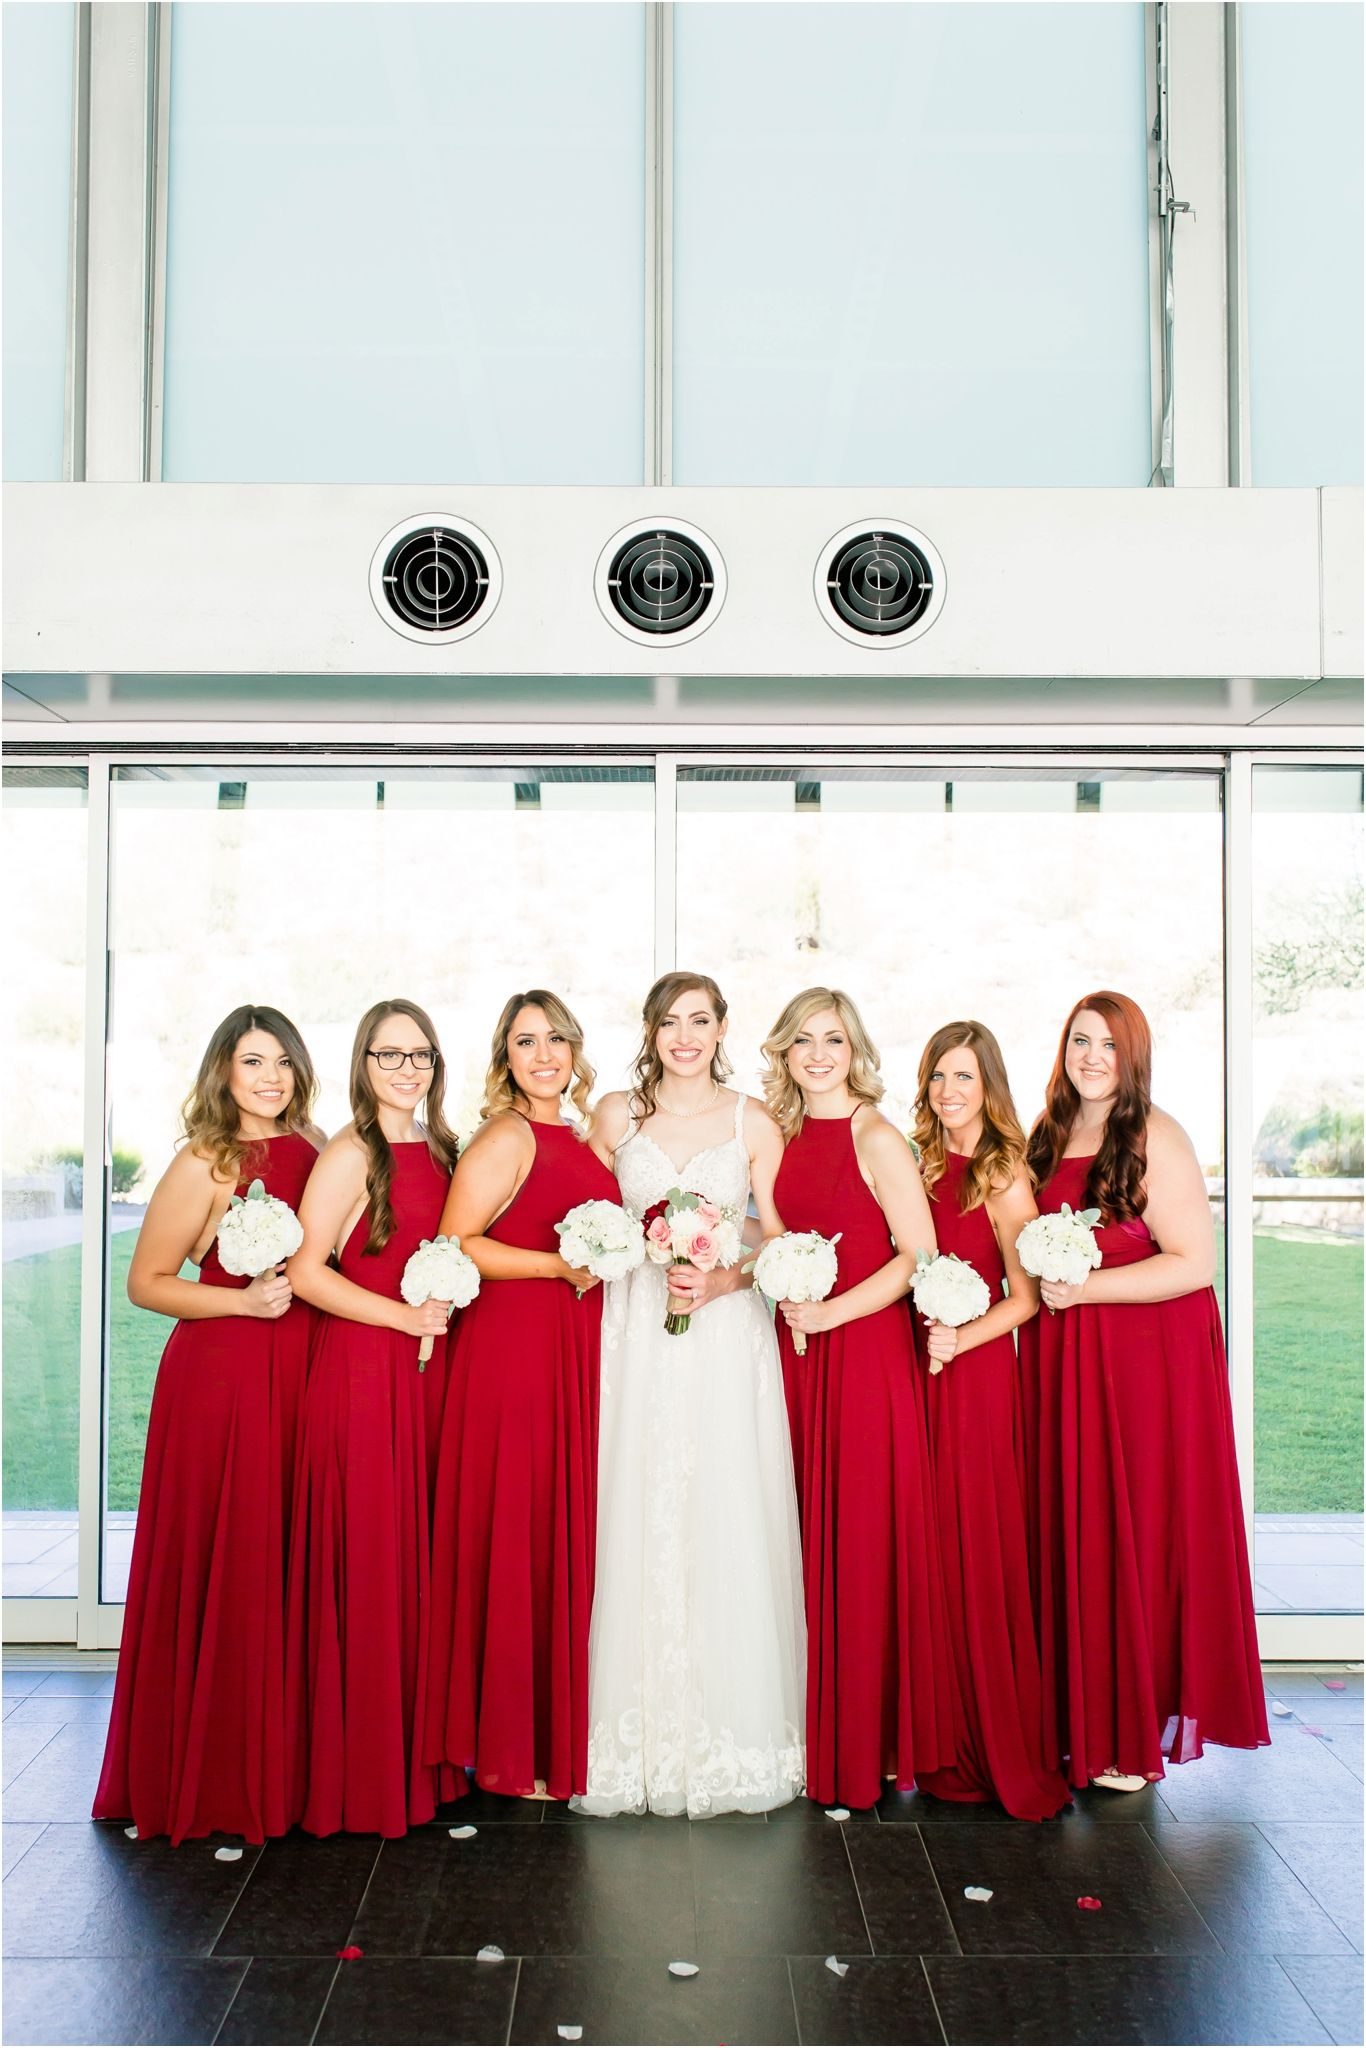 Wine Red Gold Inspired Wedding At The Prayer Pavilion Of Light At Dream City Church In Phoen Wedding Inspiration Gold Wedding Inspiration Bridesmaid Pictures